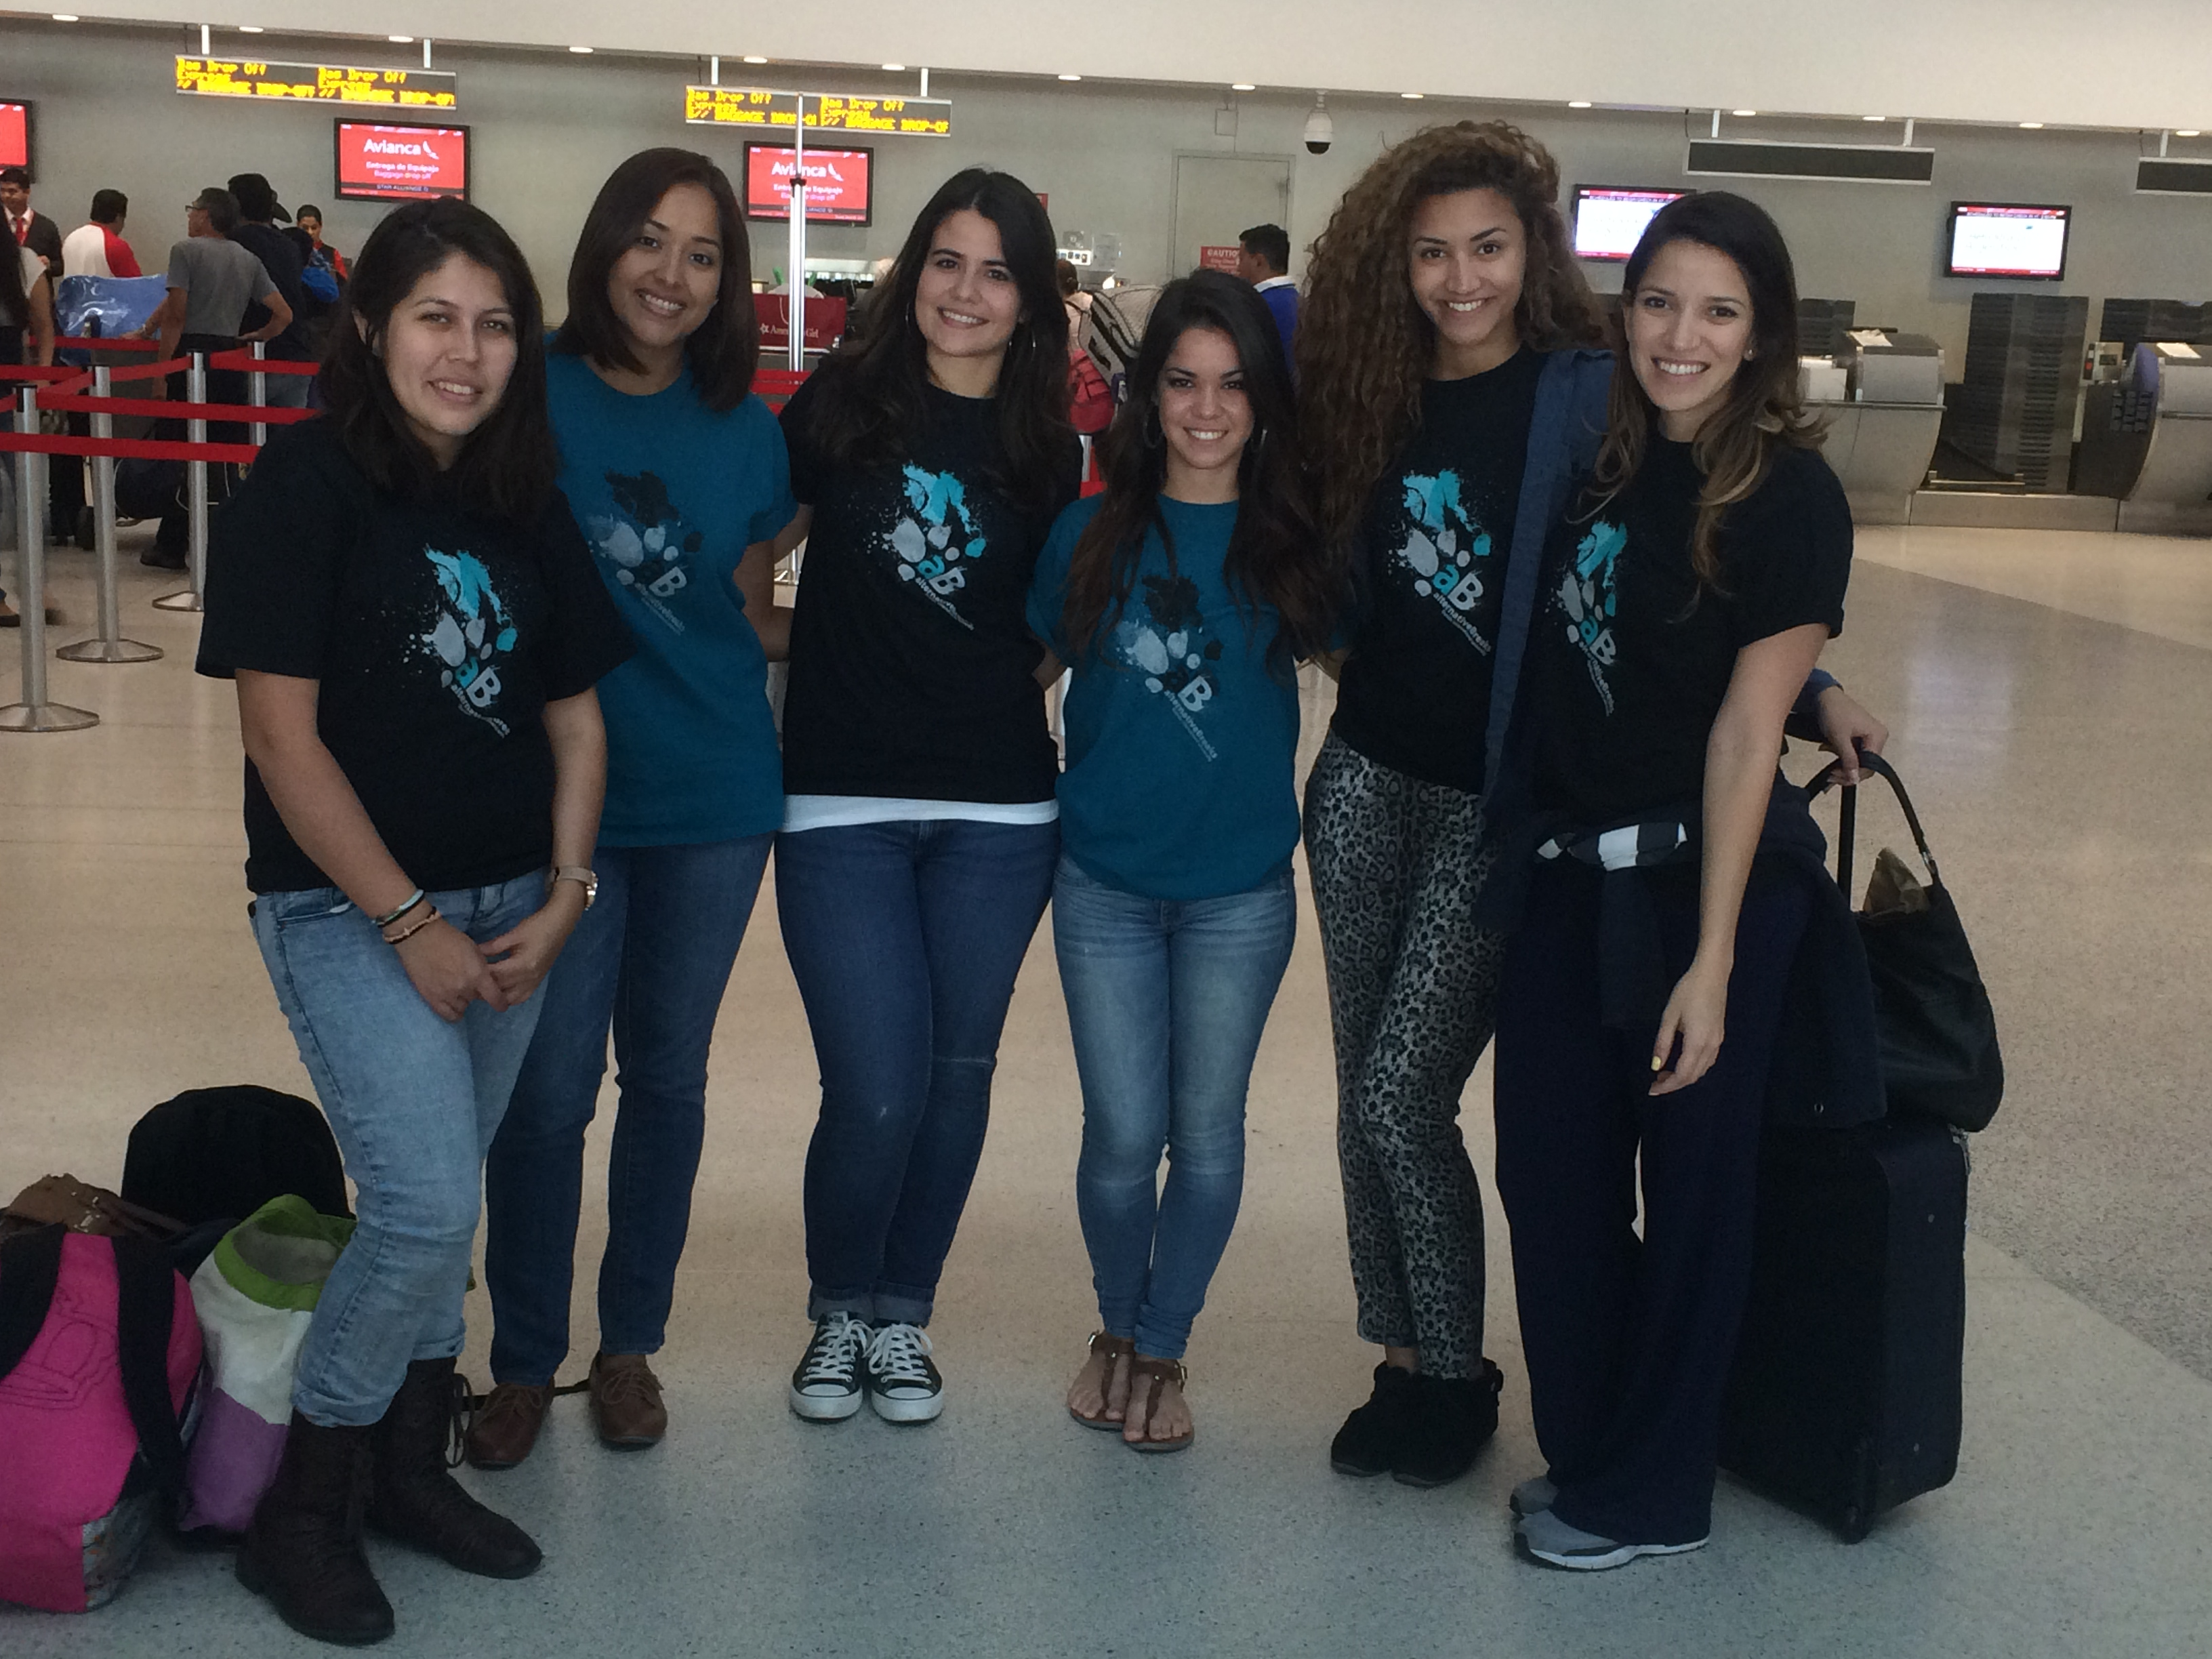 Allison Vallejos, Amanda Garcia, Maylen Morales, Megan Perezz, Nathalie Veizaga and Yesnia Joyas at Miami International Airport before the depart for Guatemala.